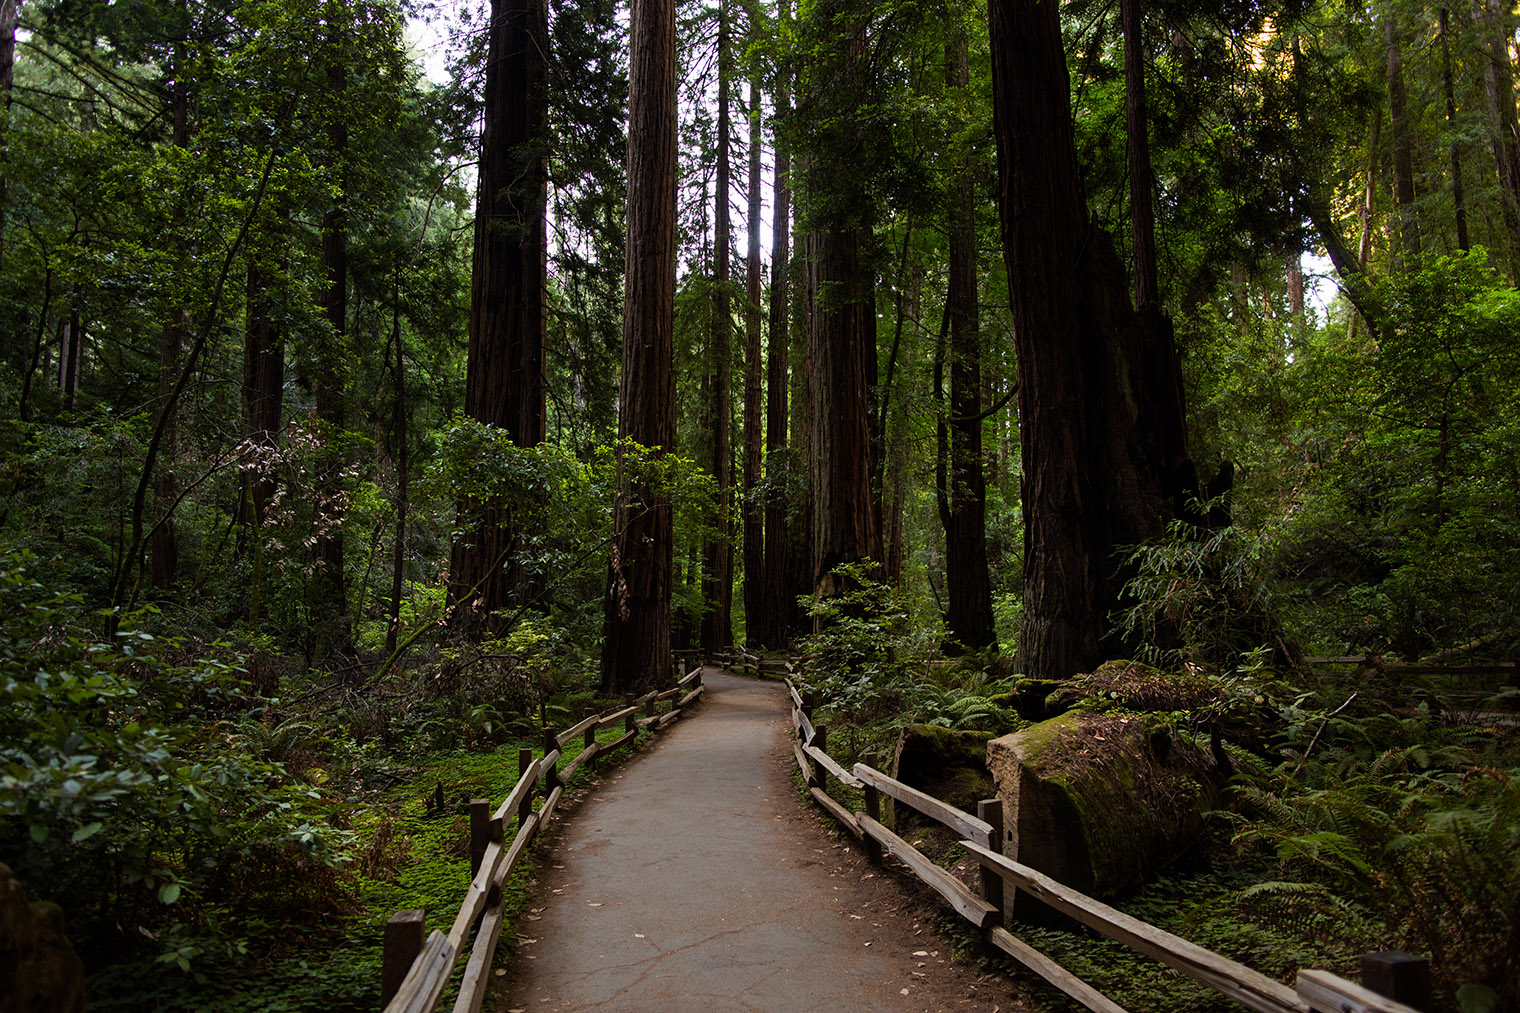 Proposal at Muir Woods National Monument